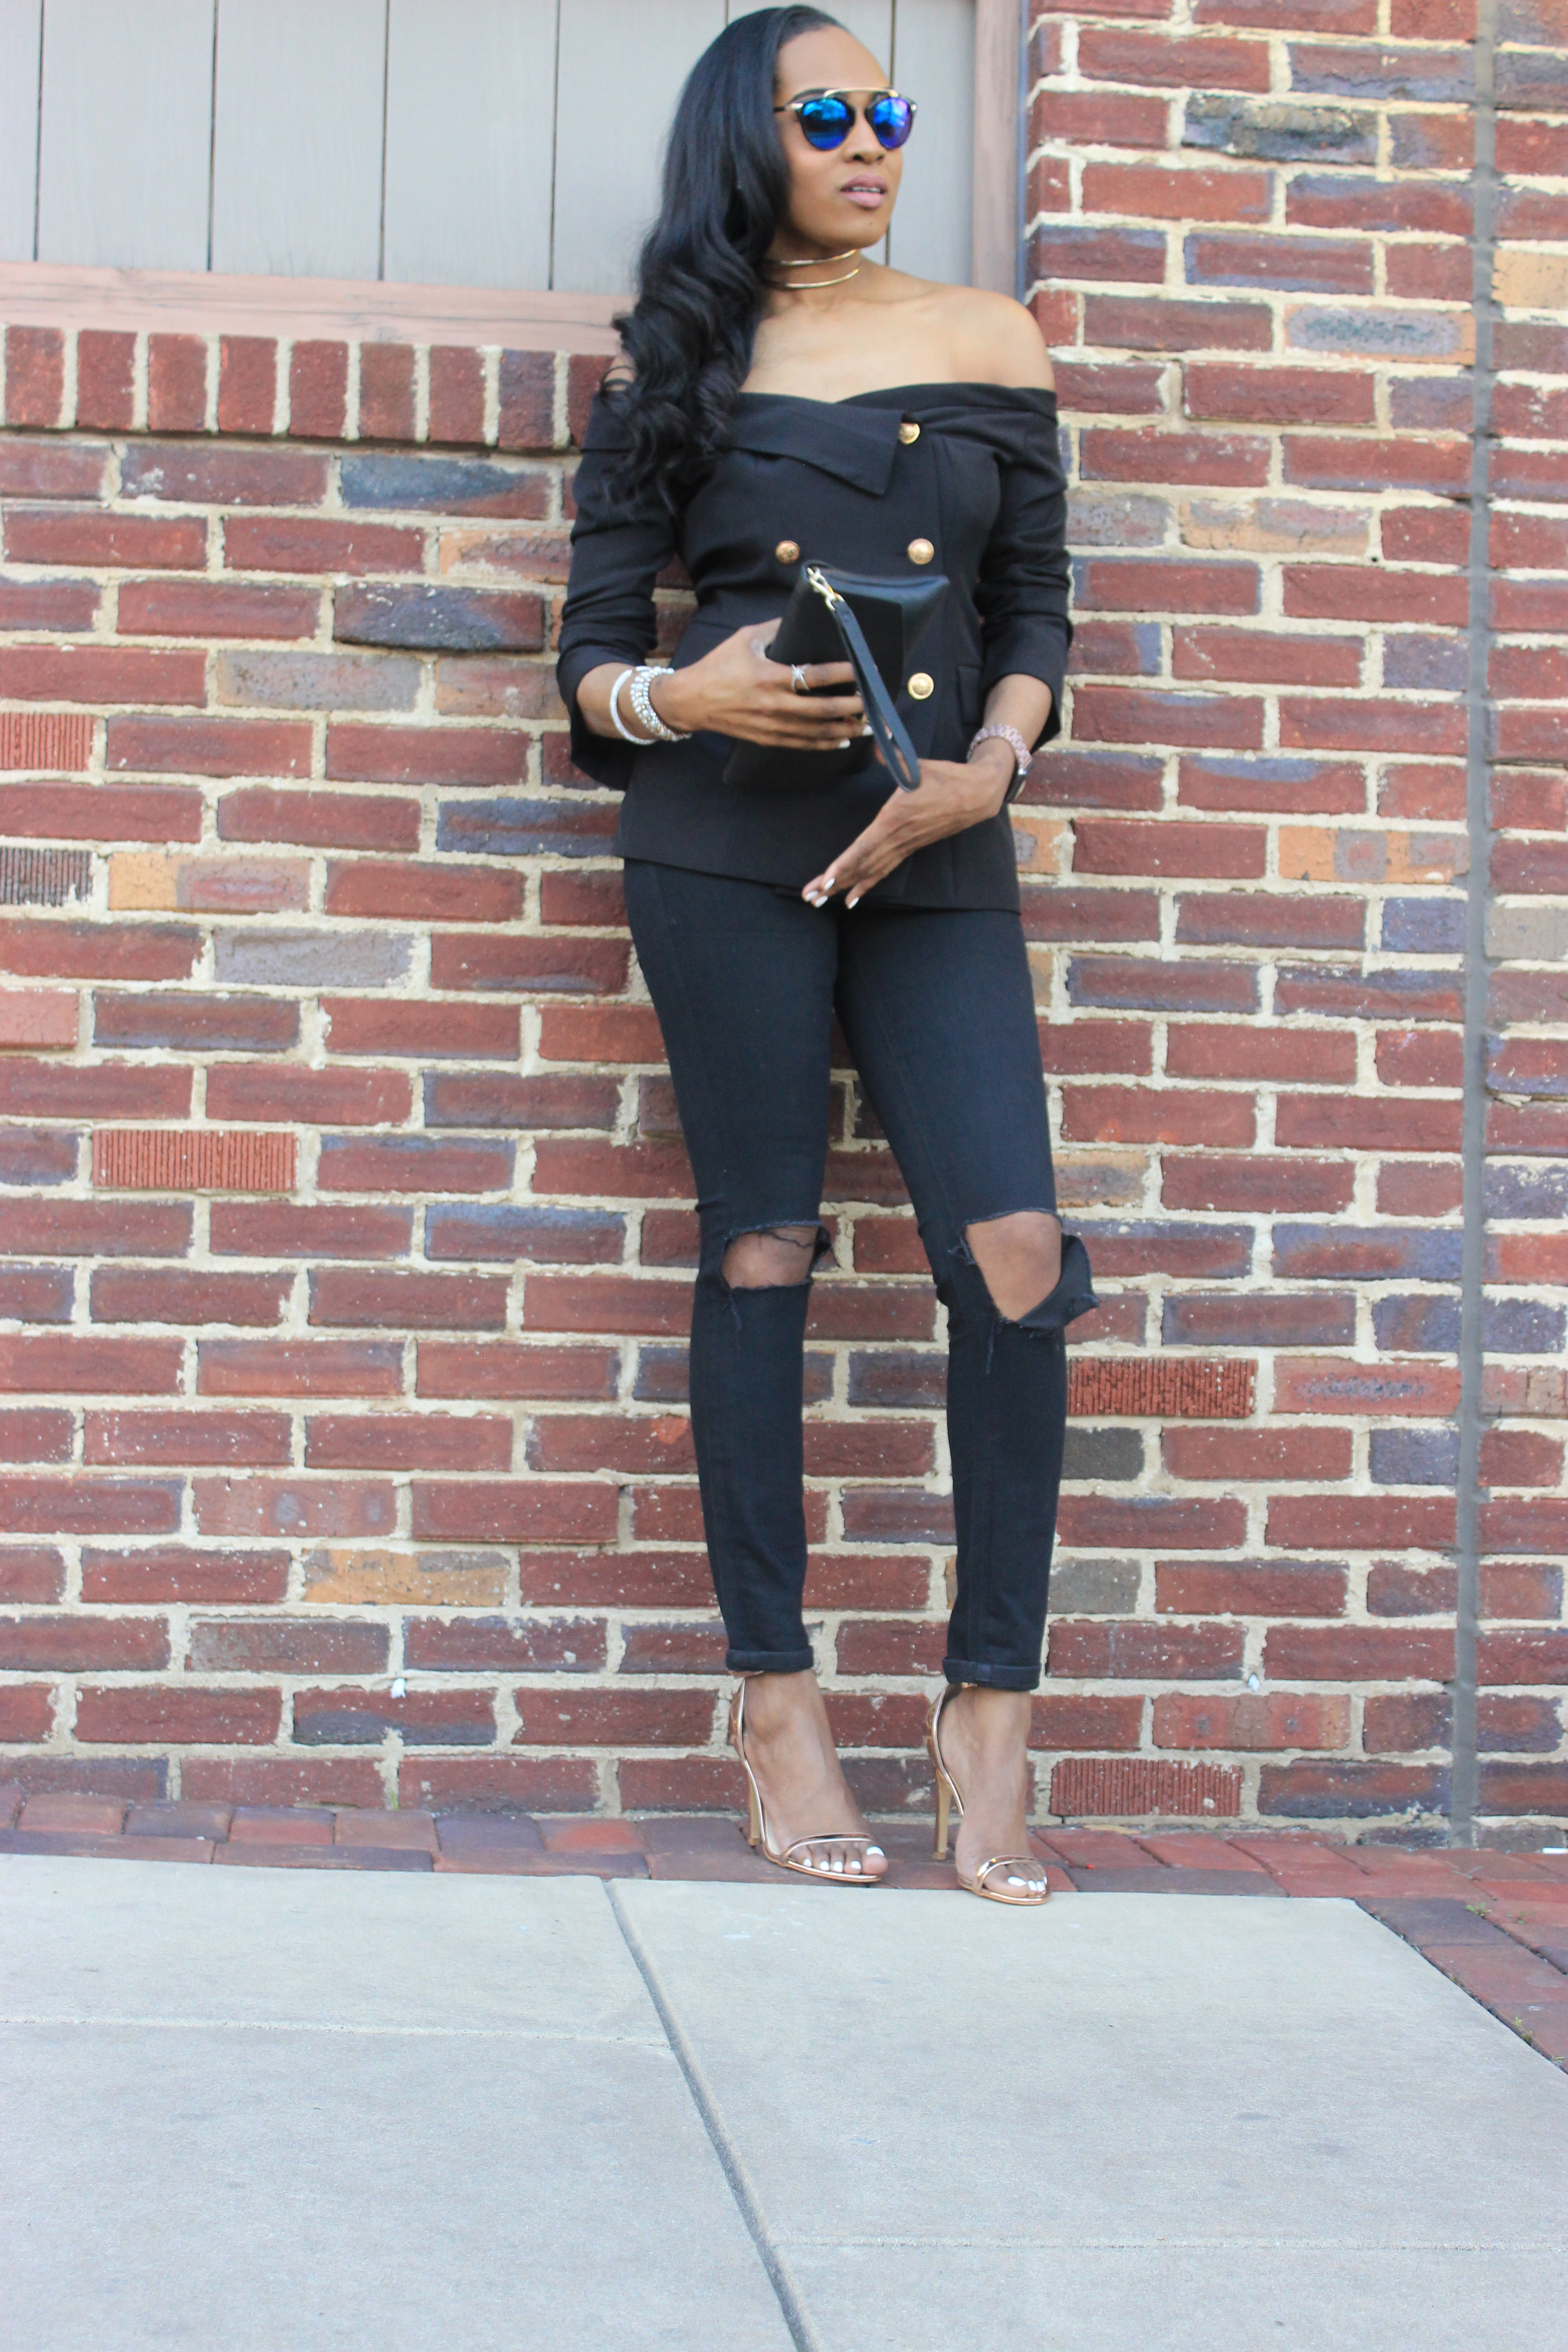 Style-files-shein-Bardot Fold-Over-Military- Blazer-thrifted-loft-black-distressed-jeans-forever21-chain-link-clutch-truffle-rose-gold heel-sandals-oohlalablog-40